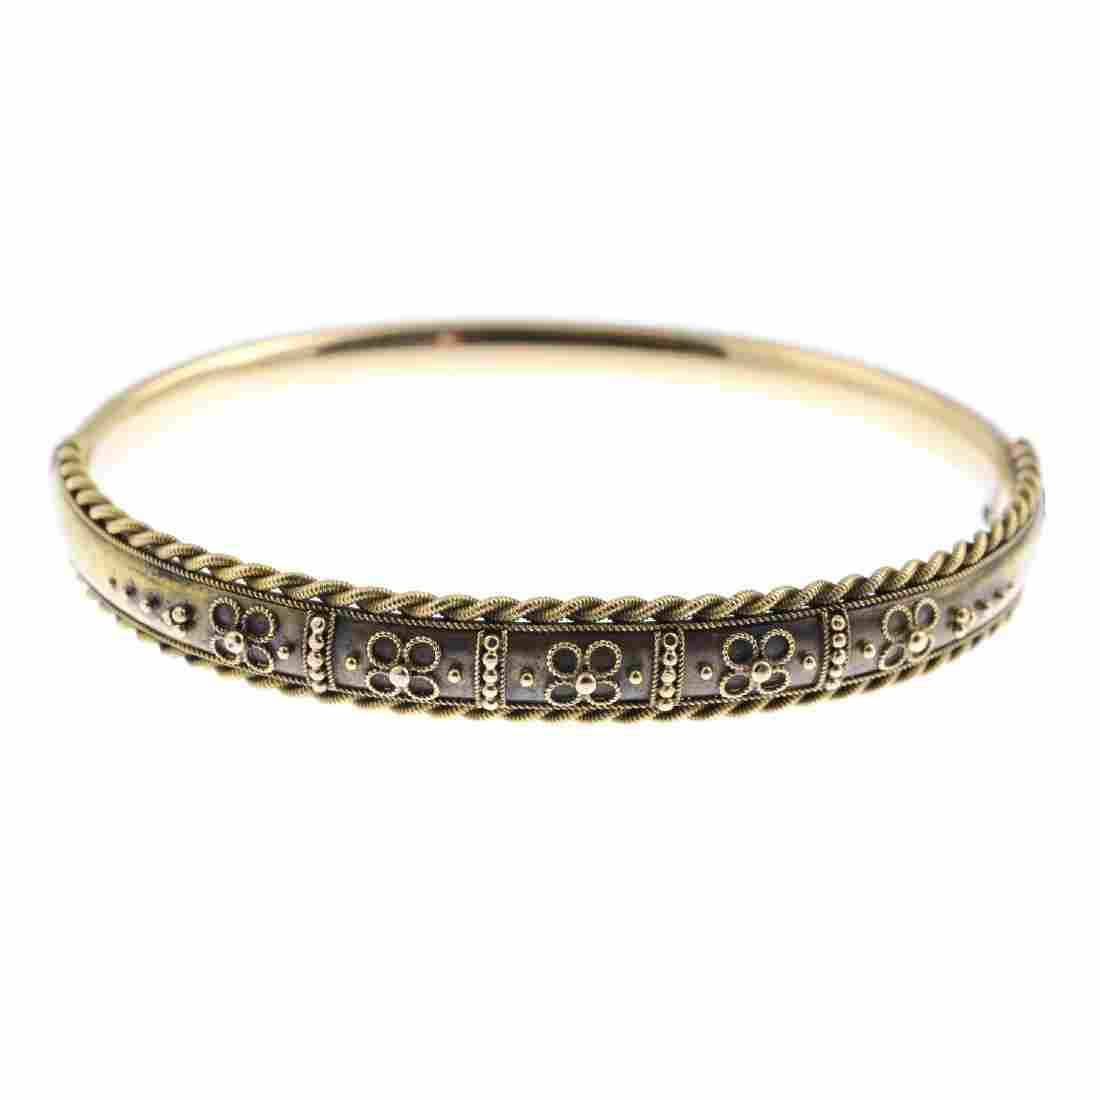 A late Victorian 15ct gold hinged bangle. The floral